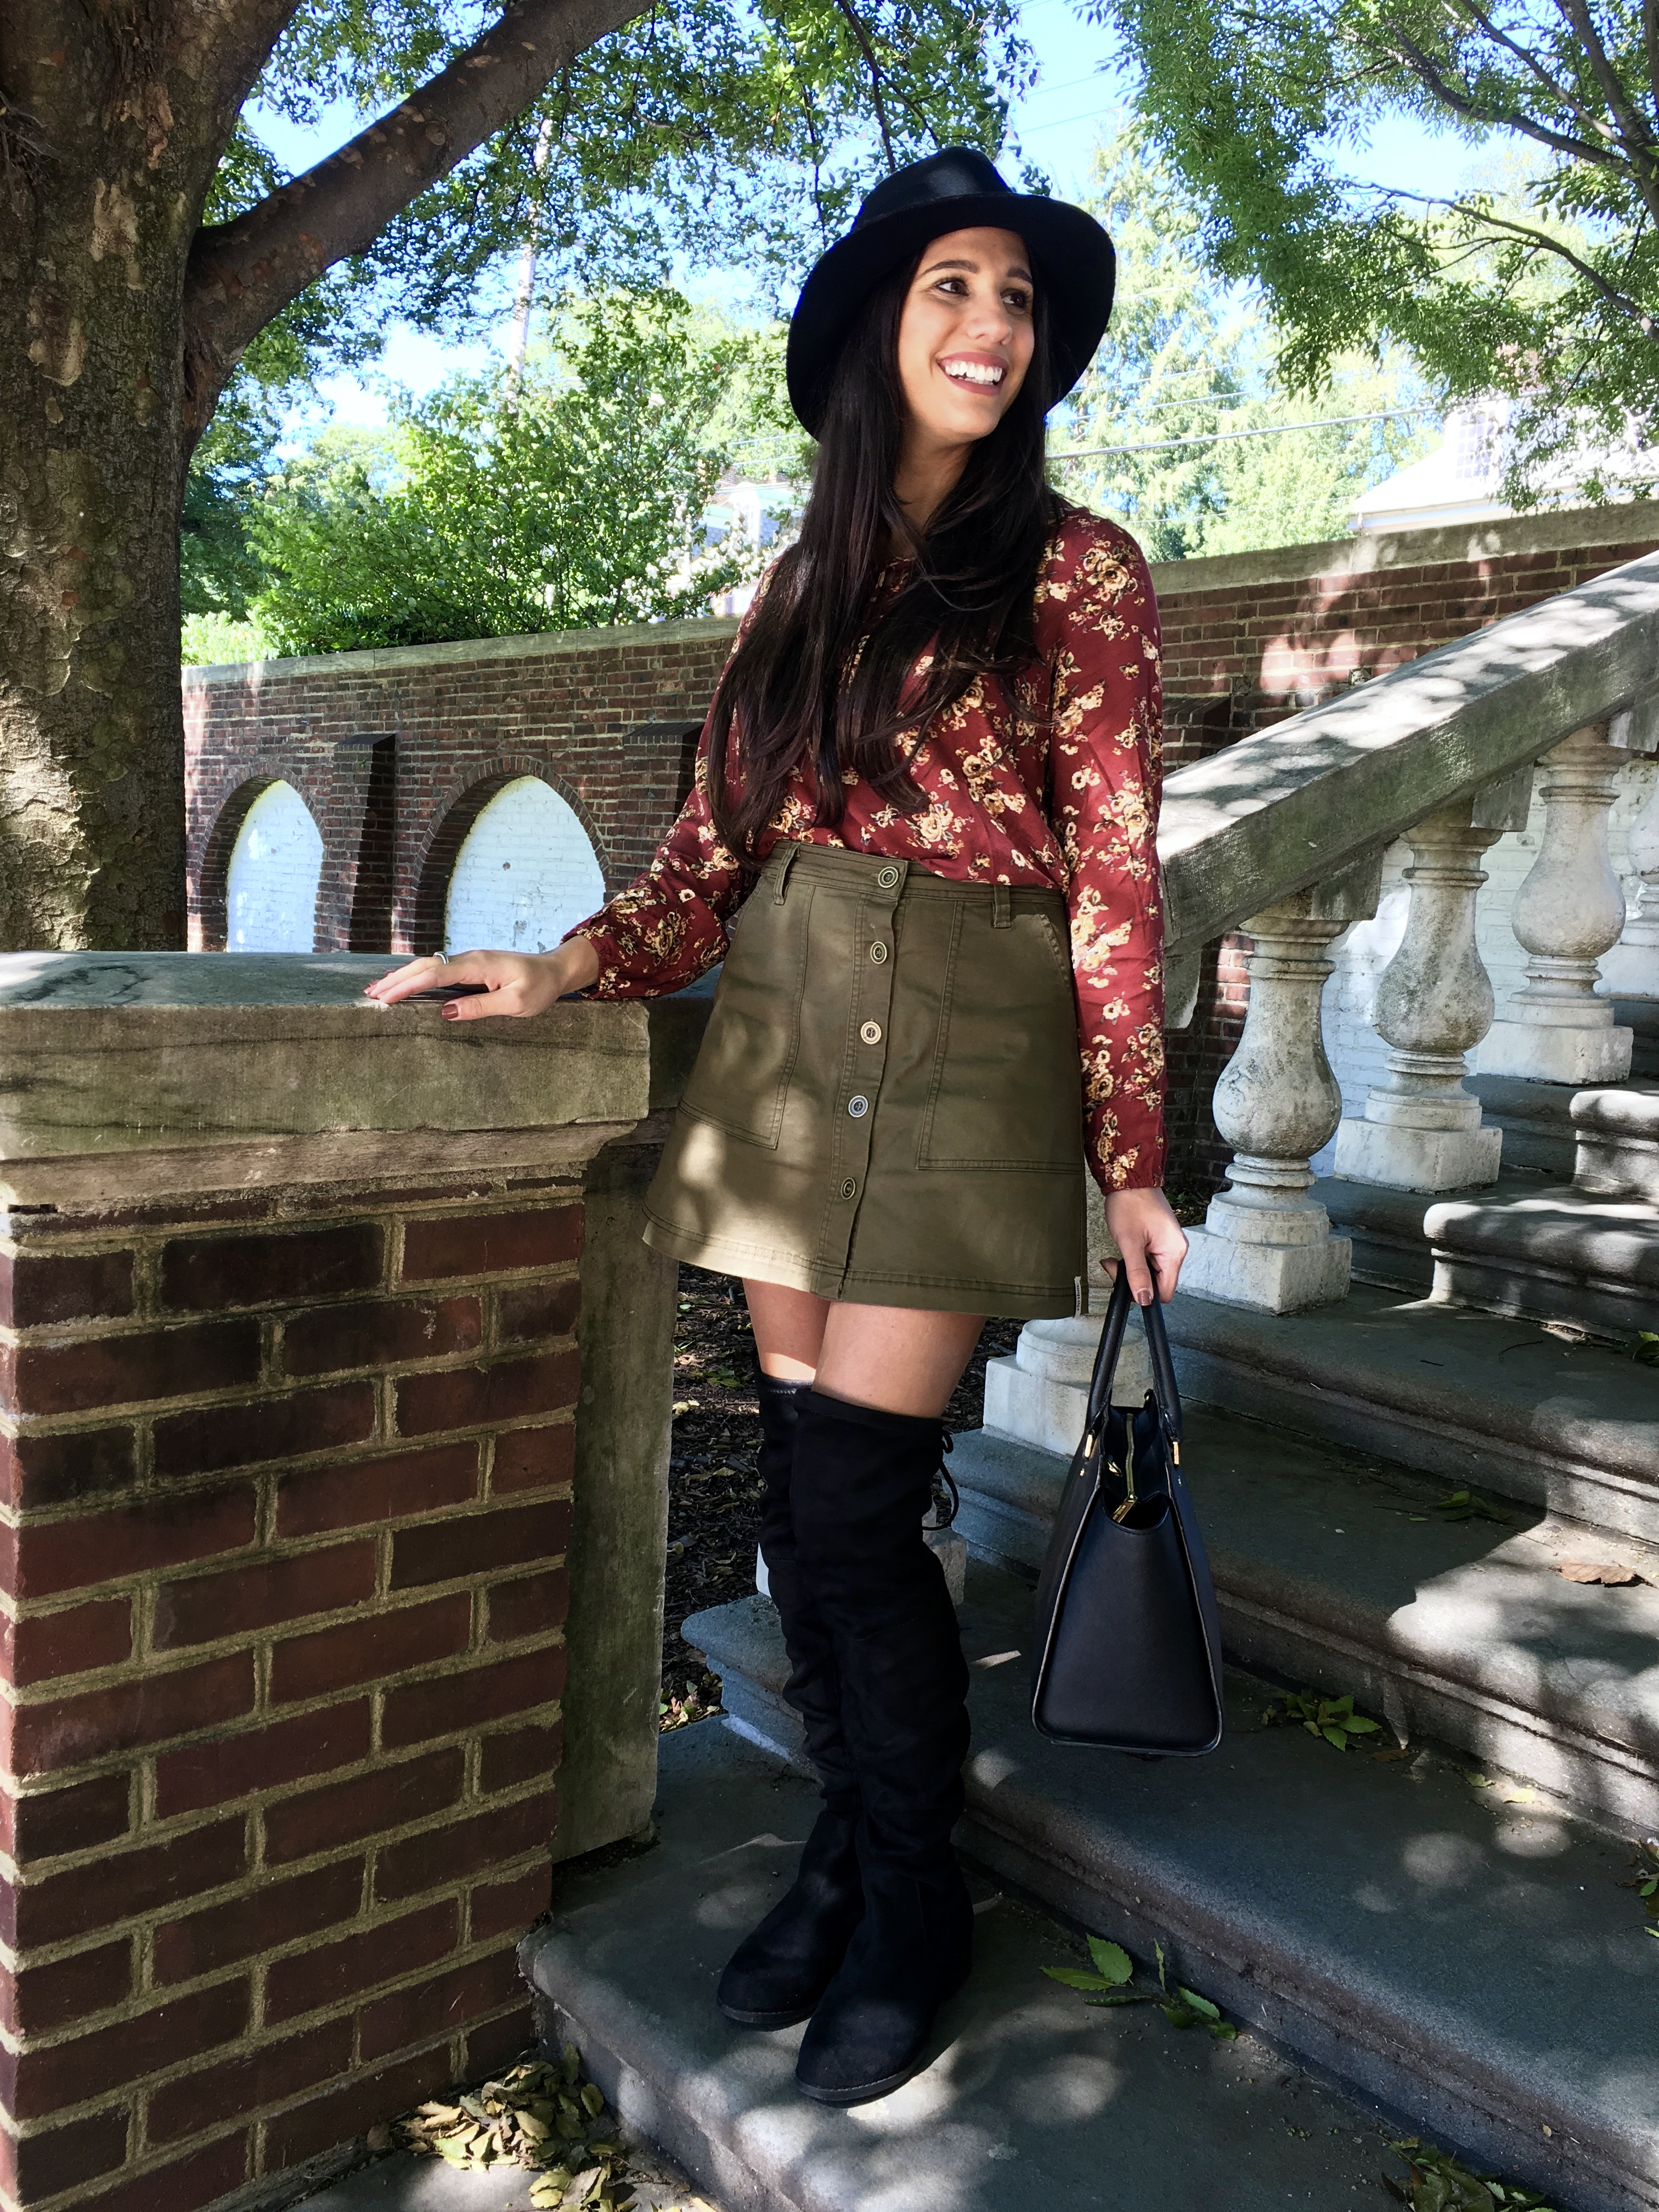 a50b88fa7b Who doesn't love a new pair of boots for the season?! I know I do! I am  sure we all came across the absolutely stunning Stuart Weitzman 'Lowland' Over  The ...